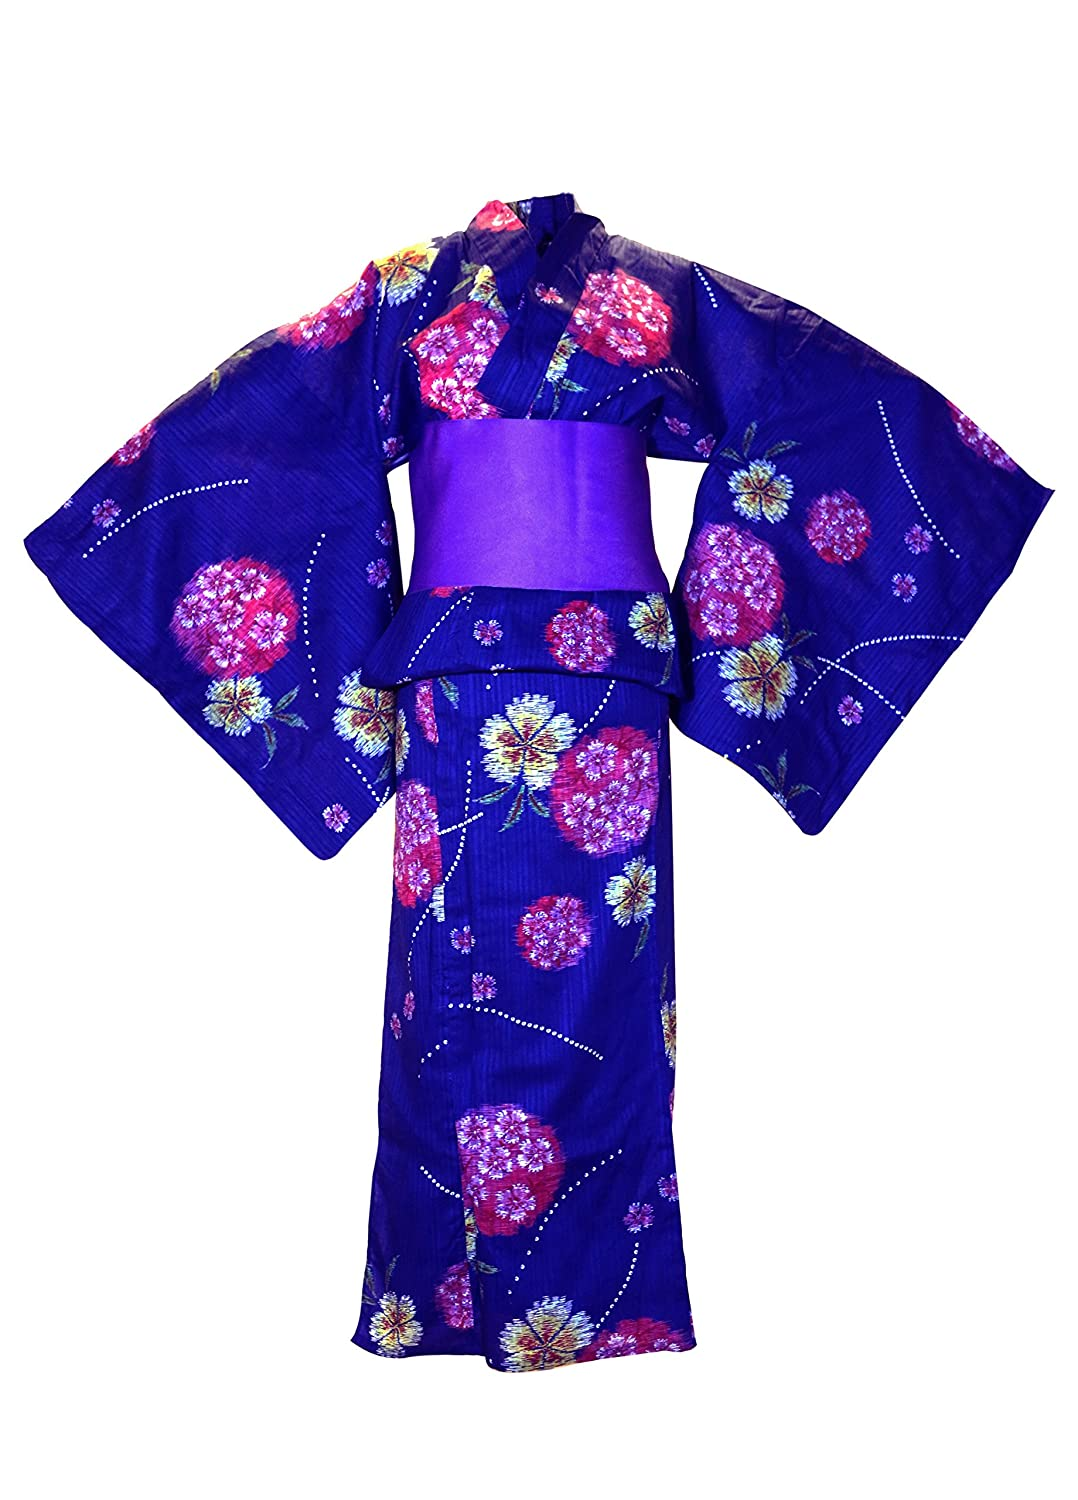 Traditional Japanese Kimono Yukata design shipped direct from Japan  Beautifully light and Crisp 100% Pure Cotton fabric. Free Purple Obi Belt  included at no ... c310623ae